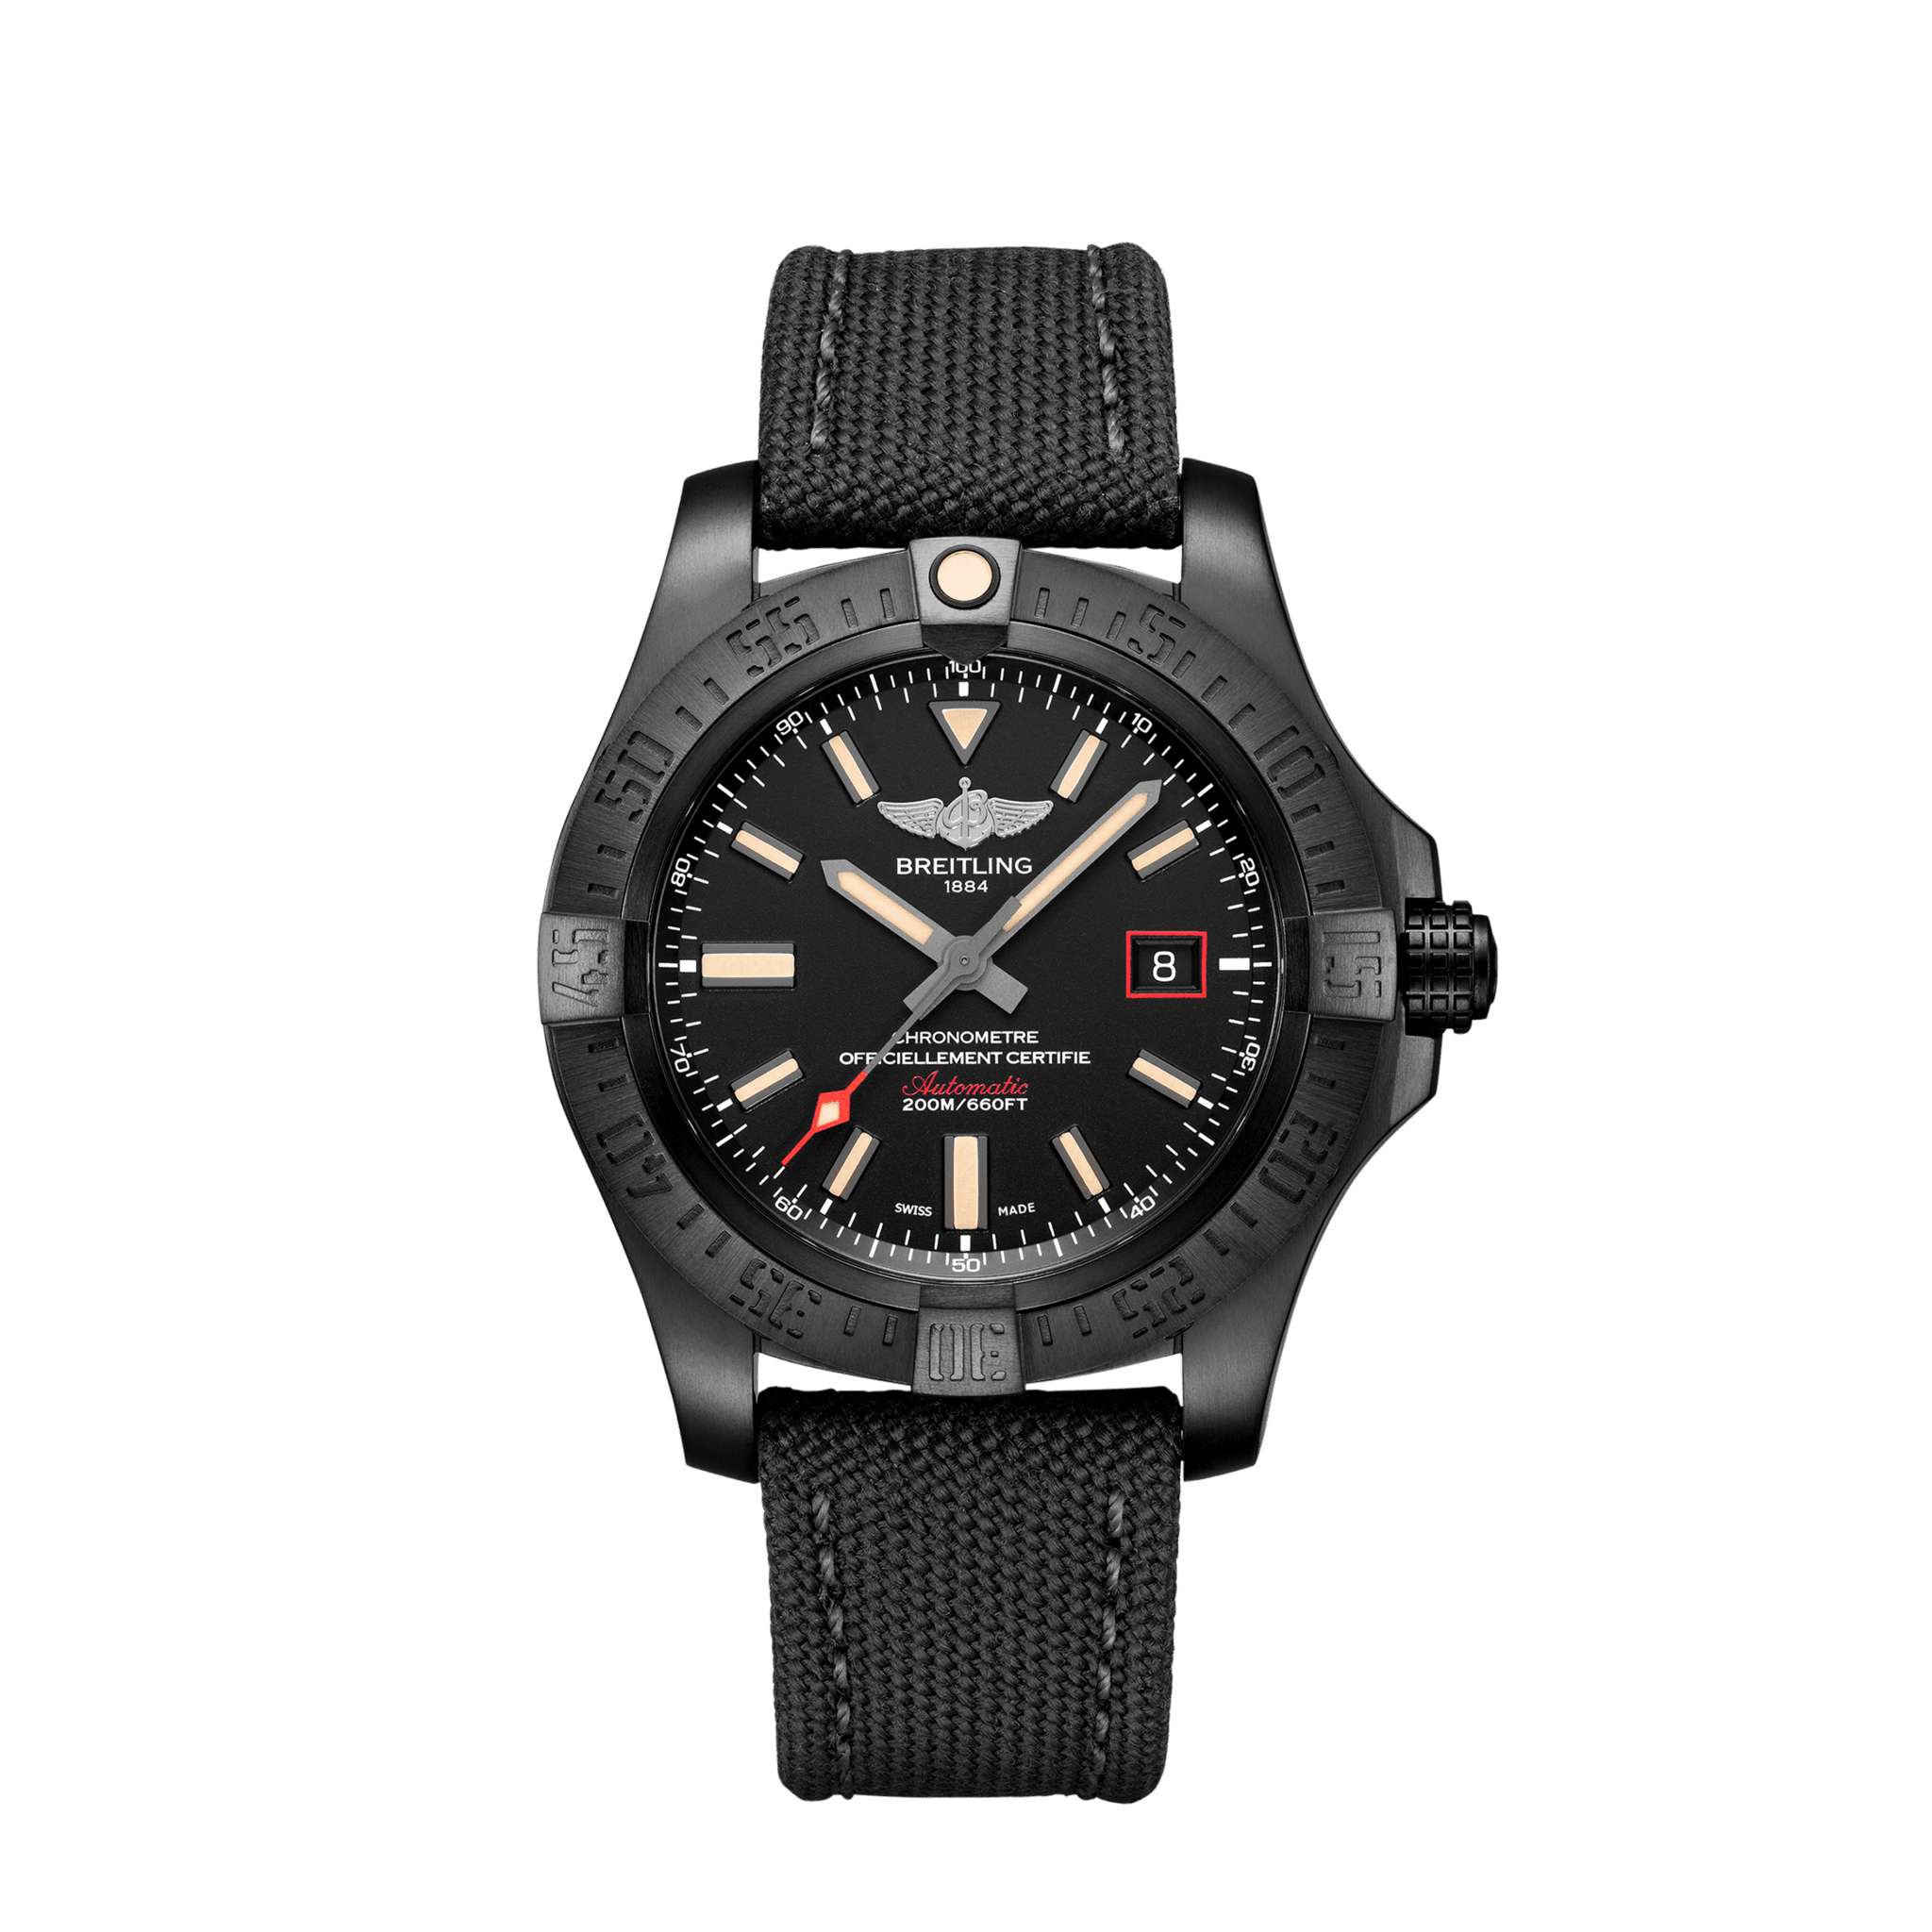 AVENGER, AVIATION WATCHES